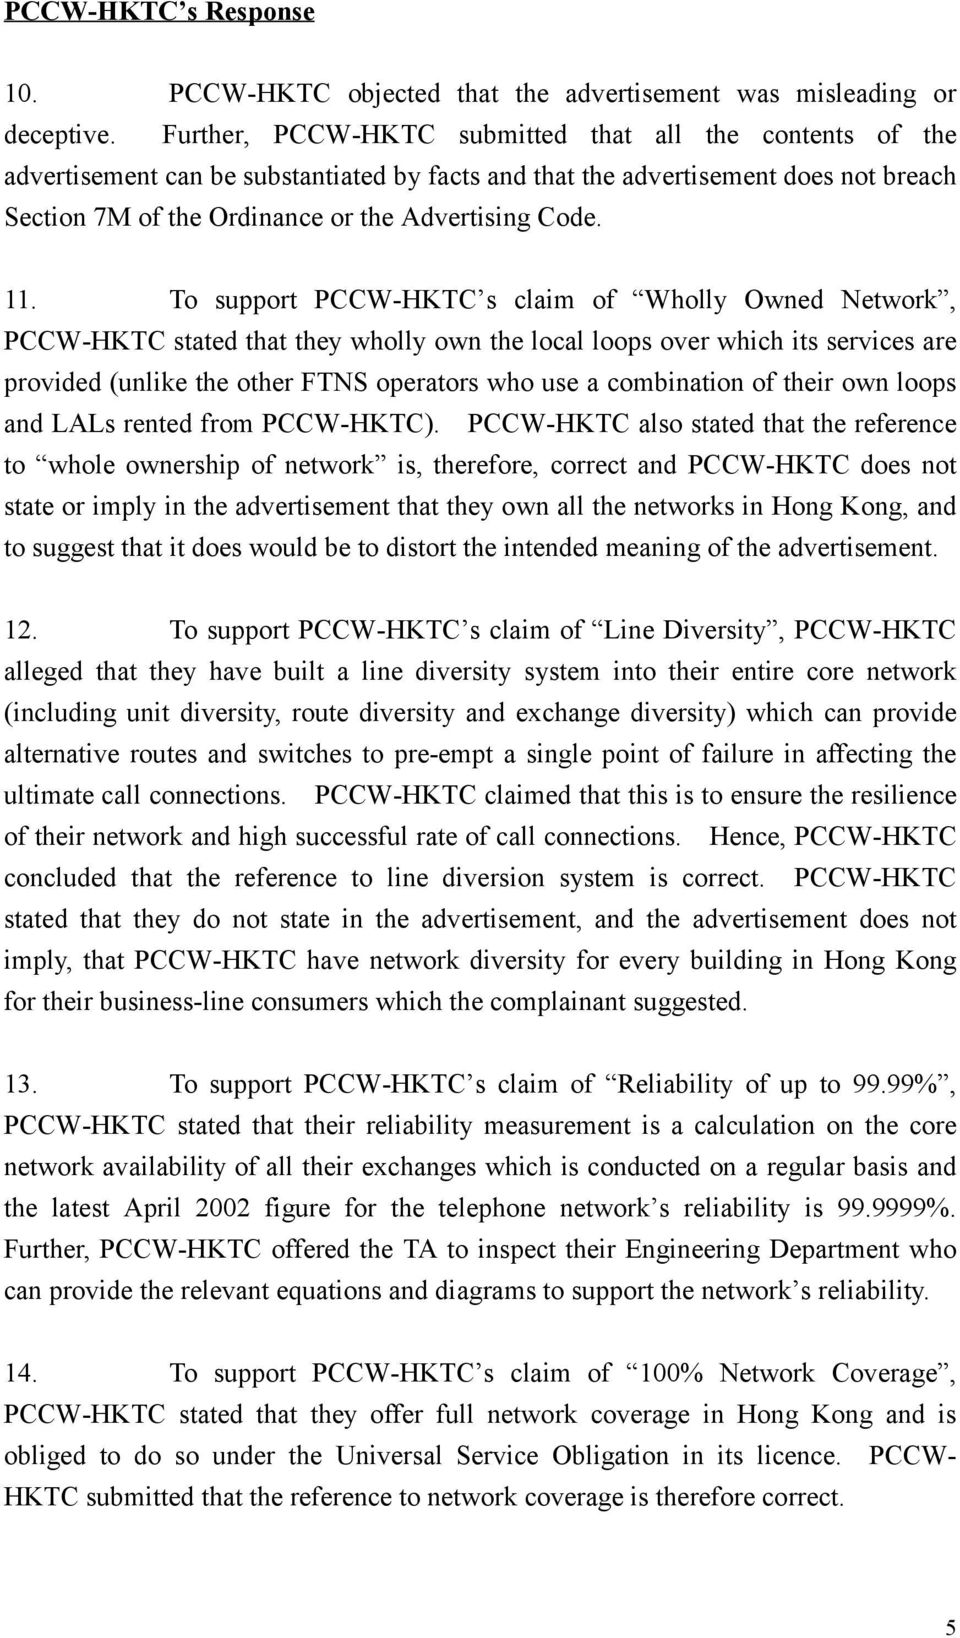 11. To support PCCW-HKTC s claim of Wholly Owned Network, PCCW-HKTC stated that they wholly own the local loops over which its services are provided (unlike the other FTNS operators who use a